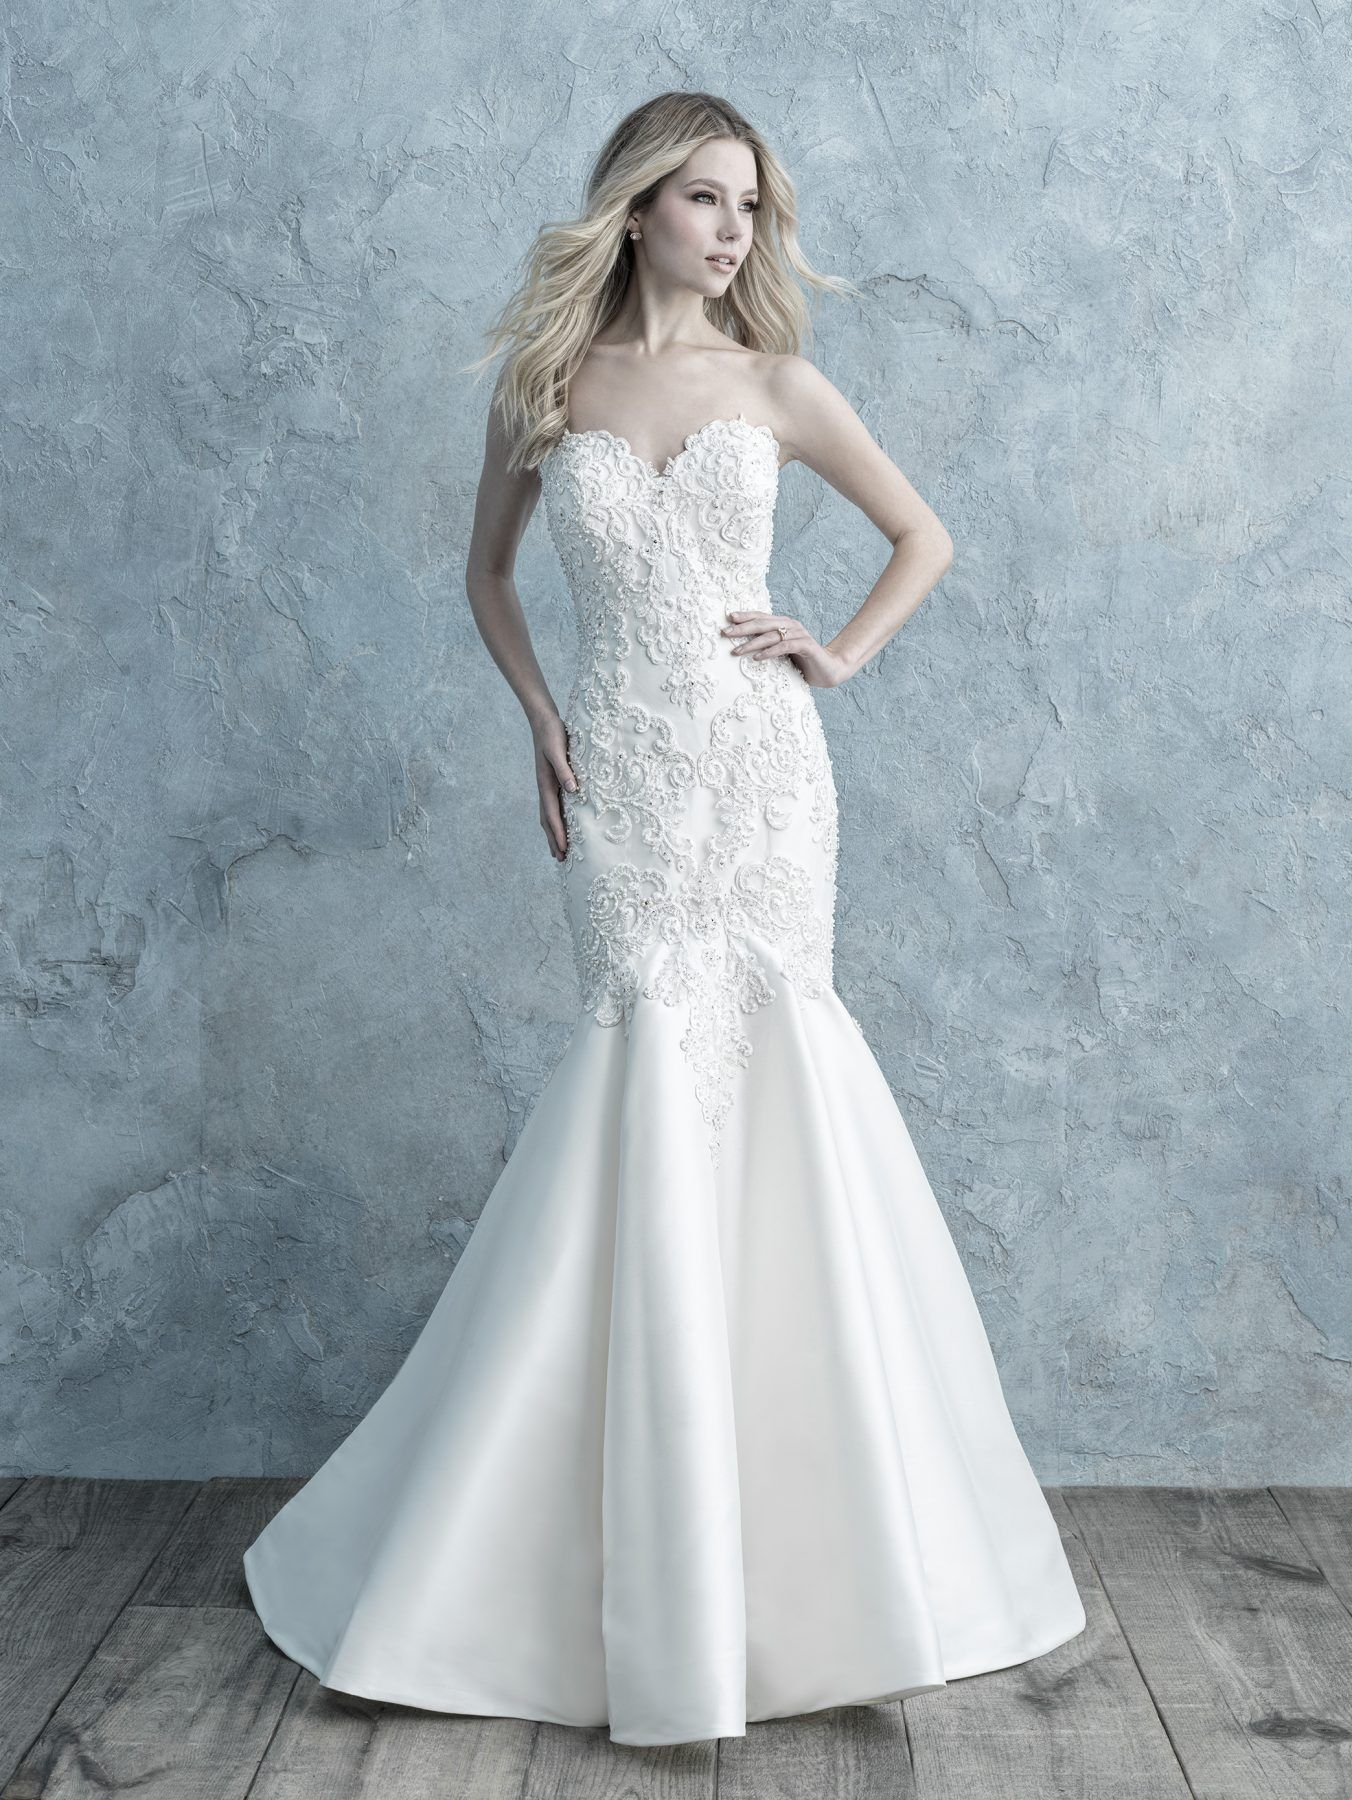 Beaded Lace Appliqué Sweetheart Strapless Fit And Flare Wedding Dress | Kleinfeld Bridal